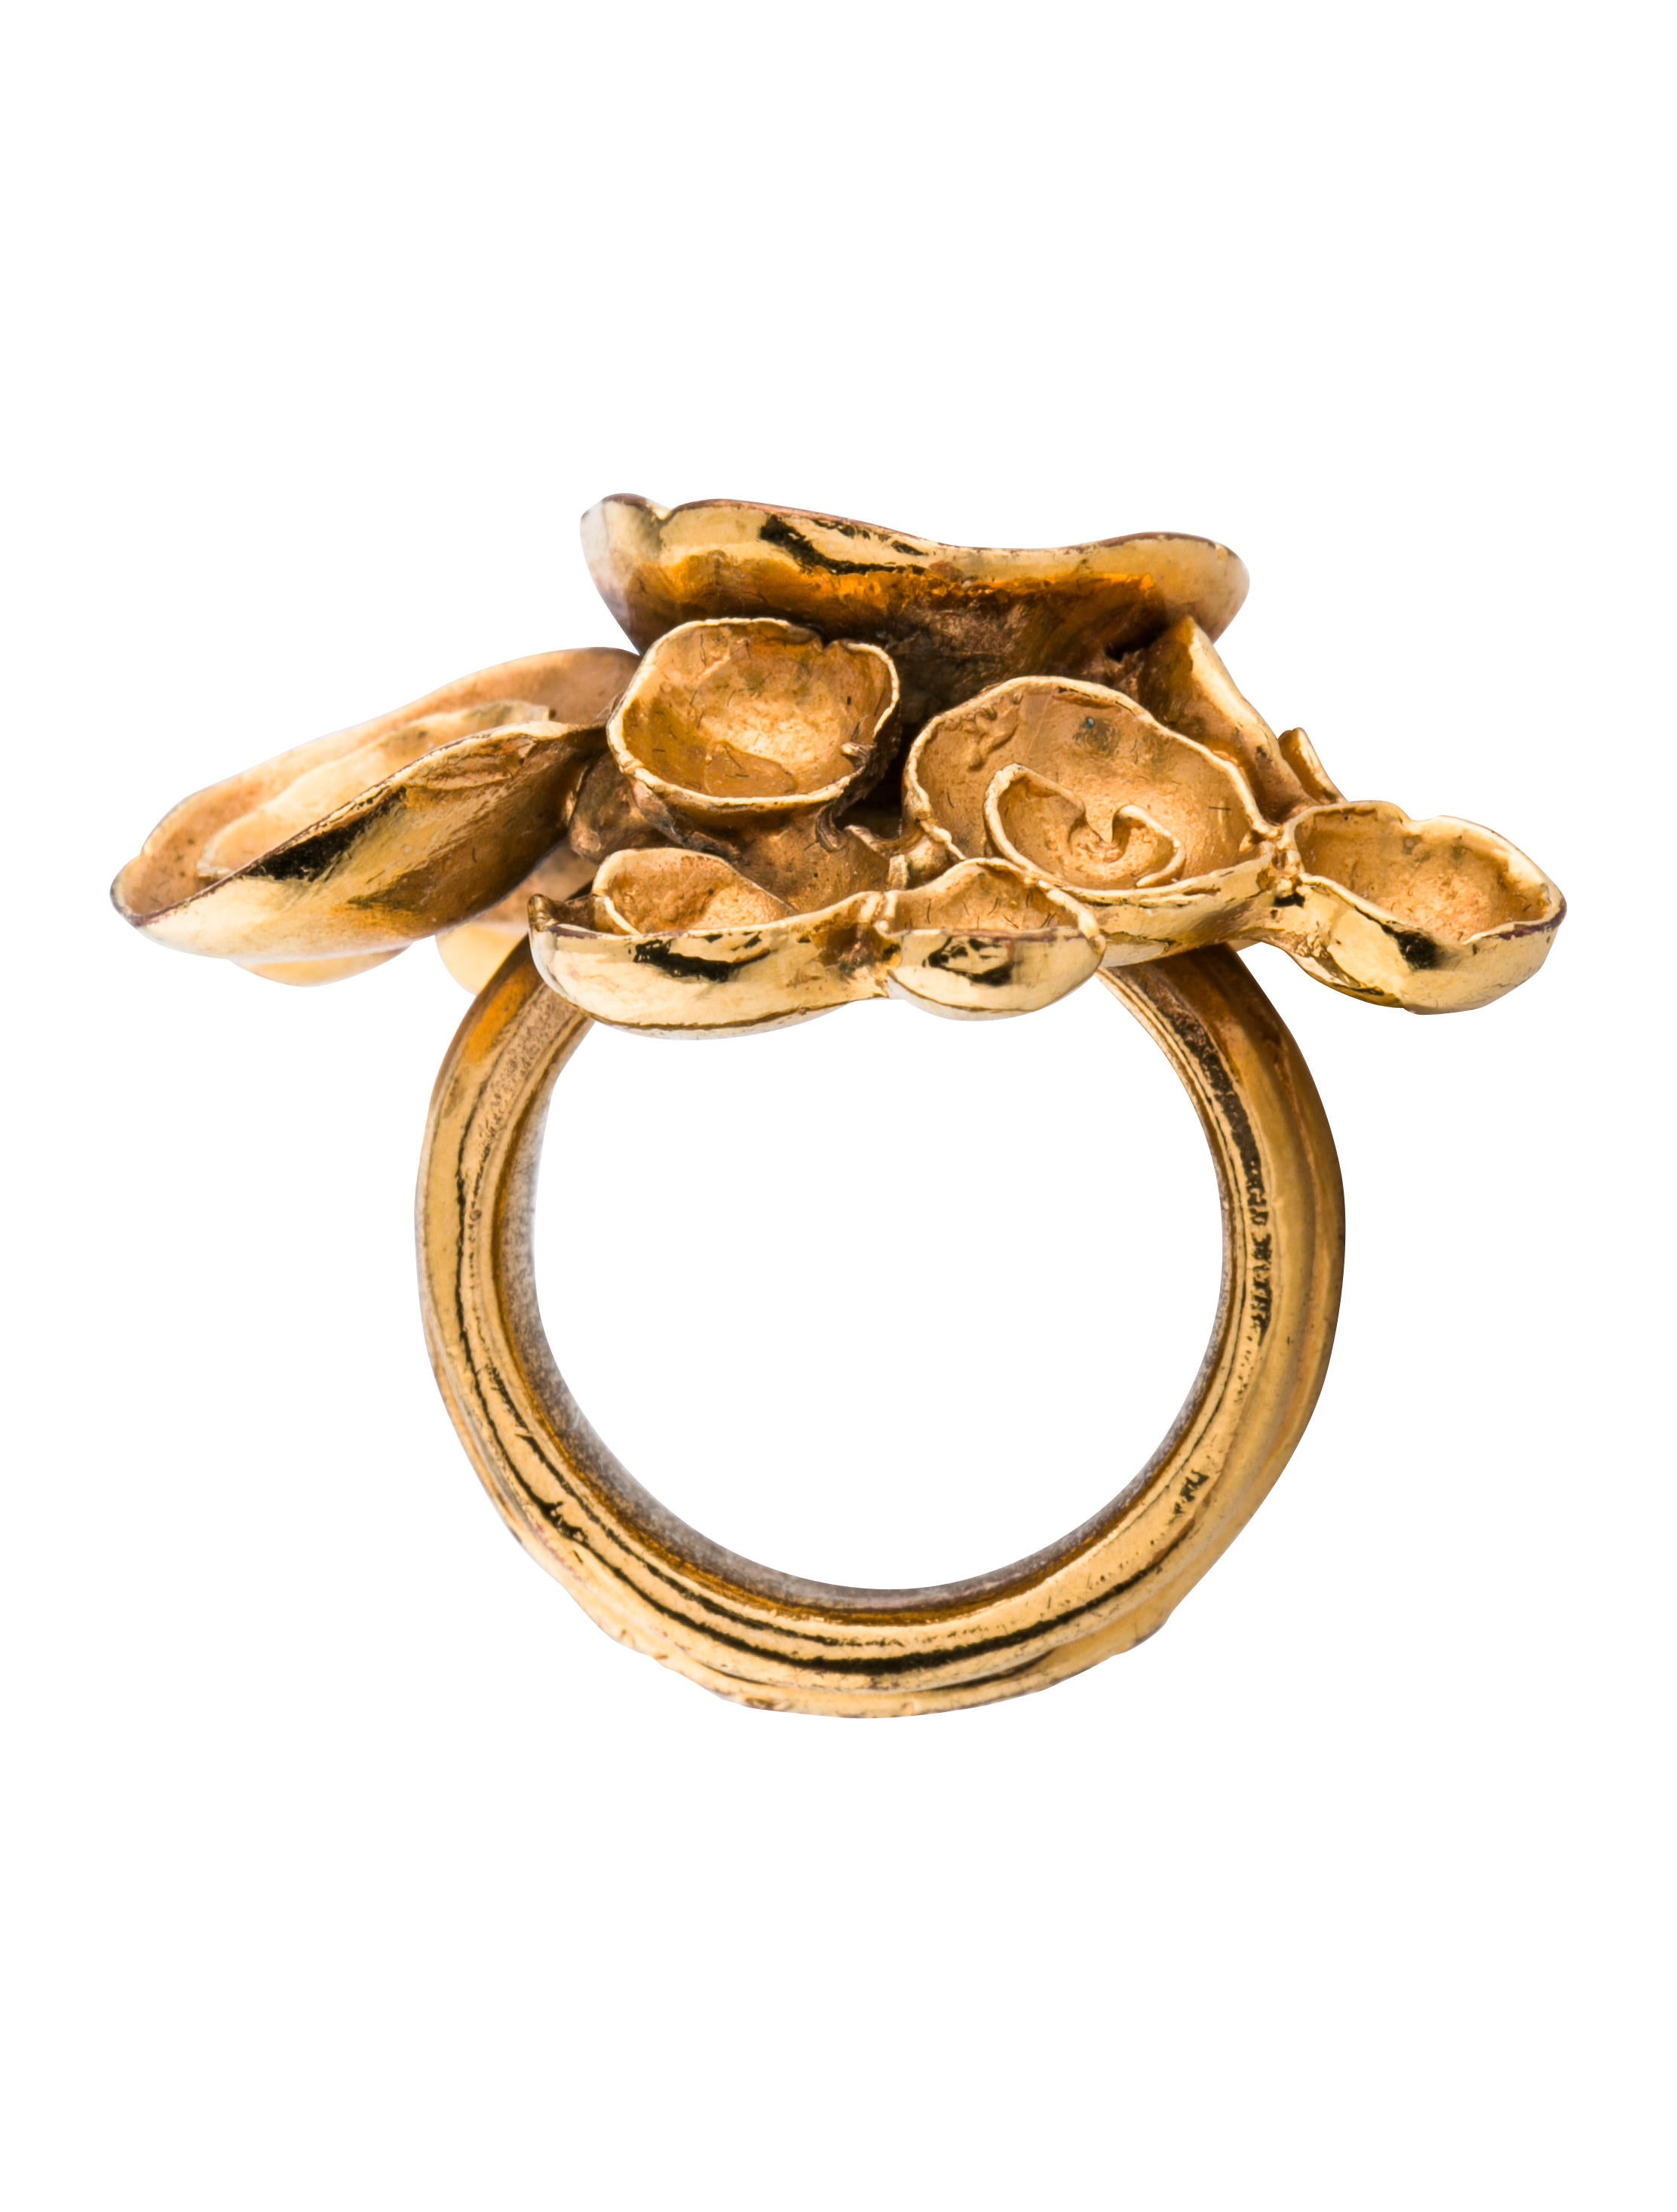 realreal arty products ring saint the engagement jewelry cocktail enlarged yves rings laurent flower